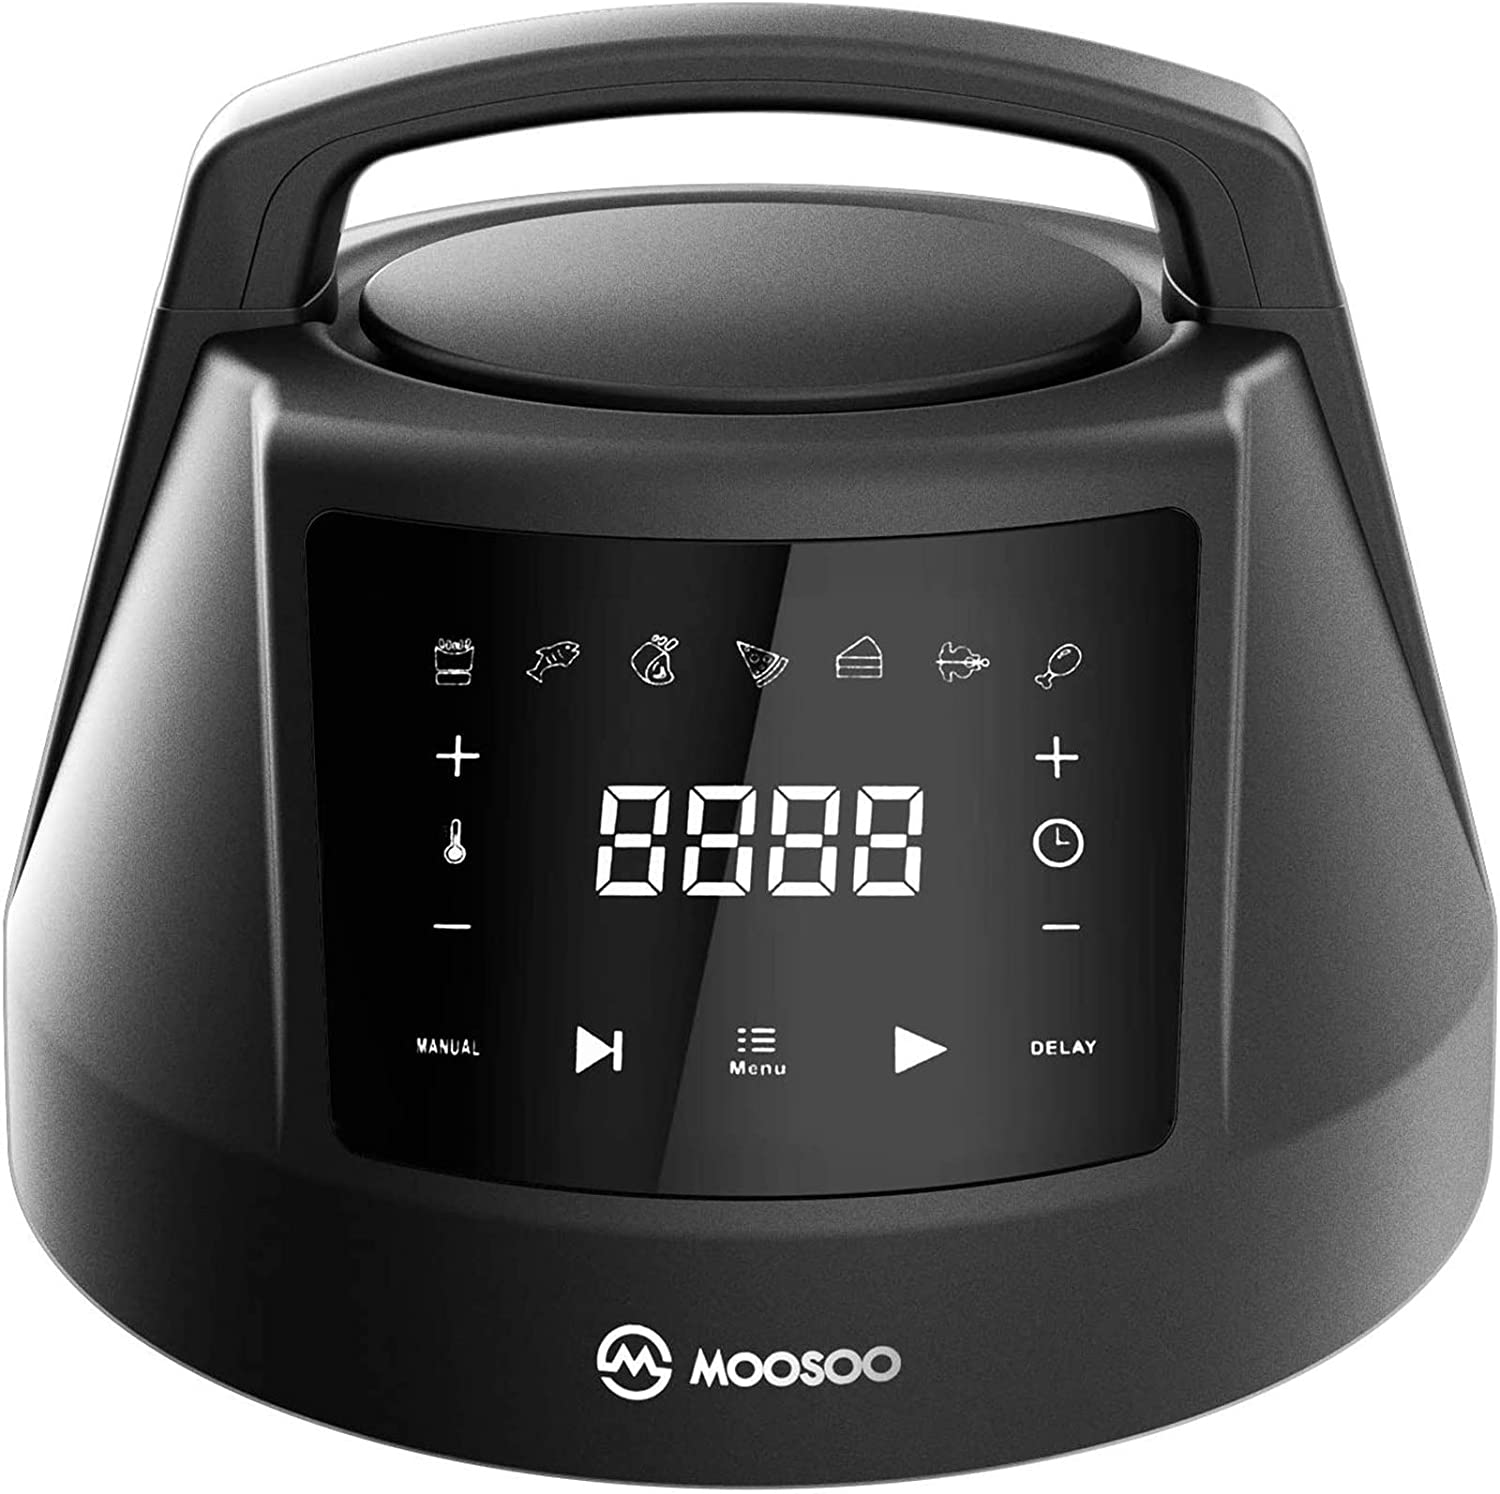 MOOSOO 6 QT Air Fryer Lid for Instant Pot with 7 Optional Presets, Turn Your Electric Pressure Cooker Into Air Fryer in Seconds, 95% Less Oil Air Fryer Lid with Digital LED Display & IMD Touch Panel